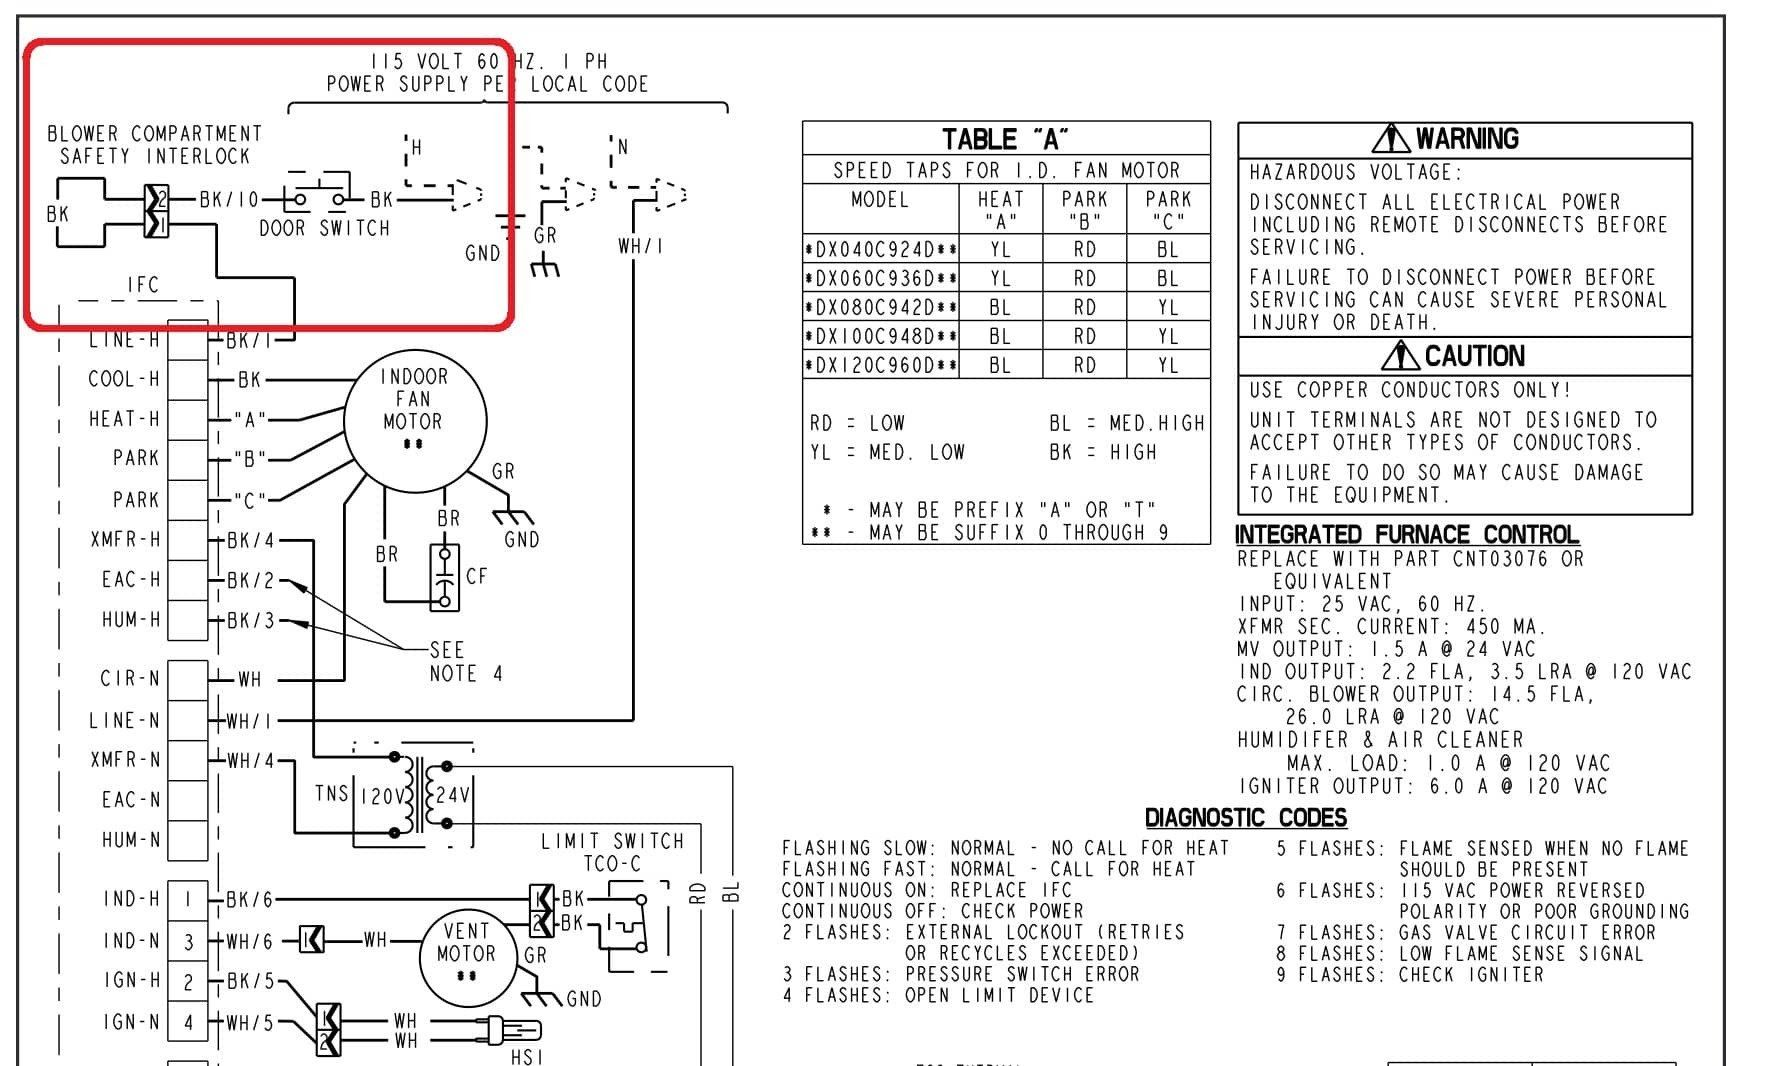 Trane Air Handler Wiring Diagram Wiring Diagram Lambdarepos Intended For Trane Wiring Diagram Heat Pump Coding Diagram Design